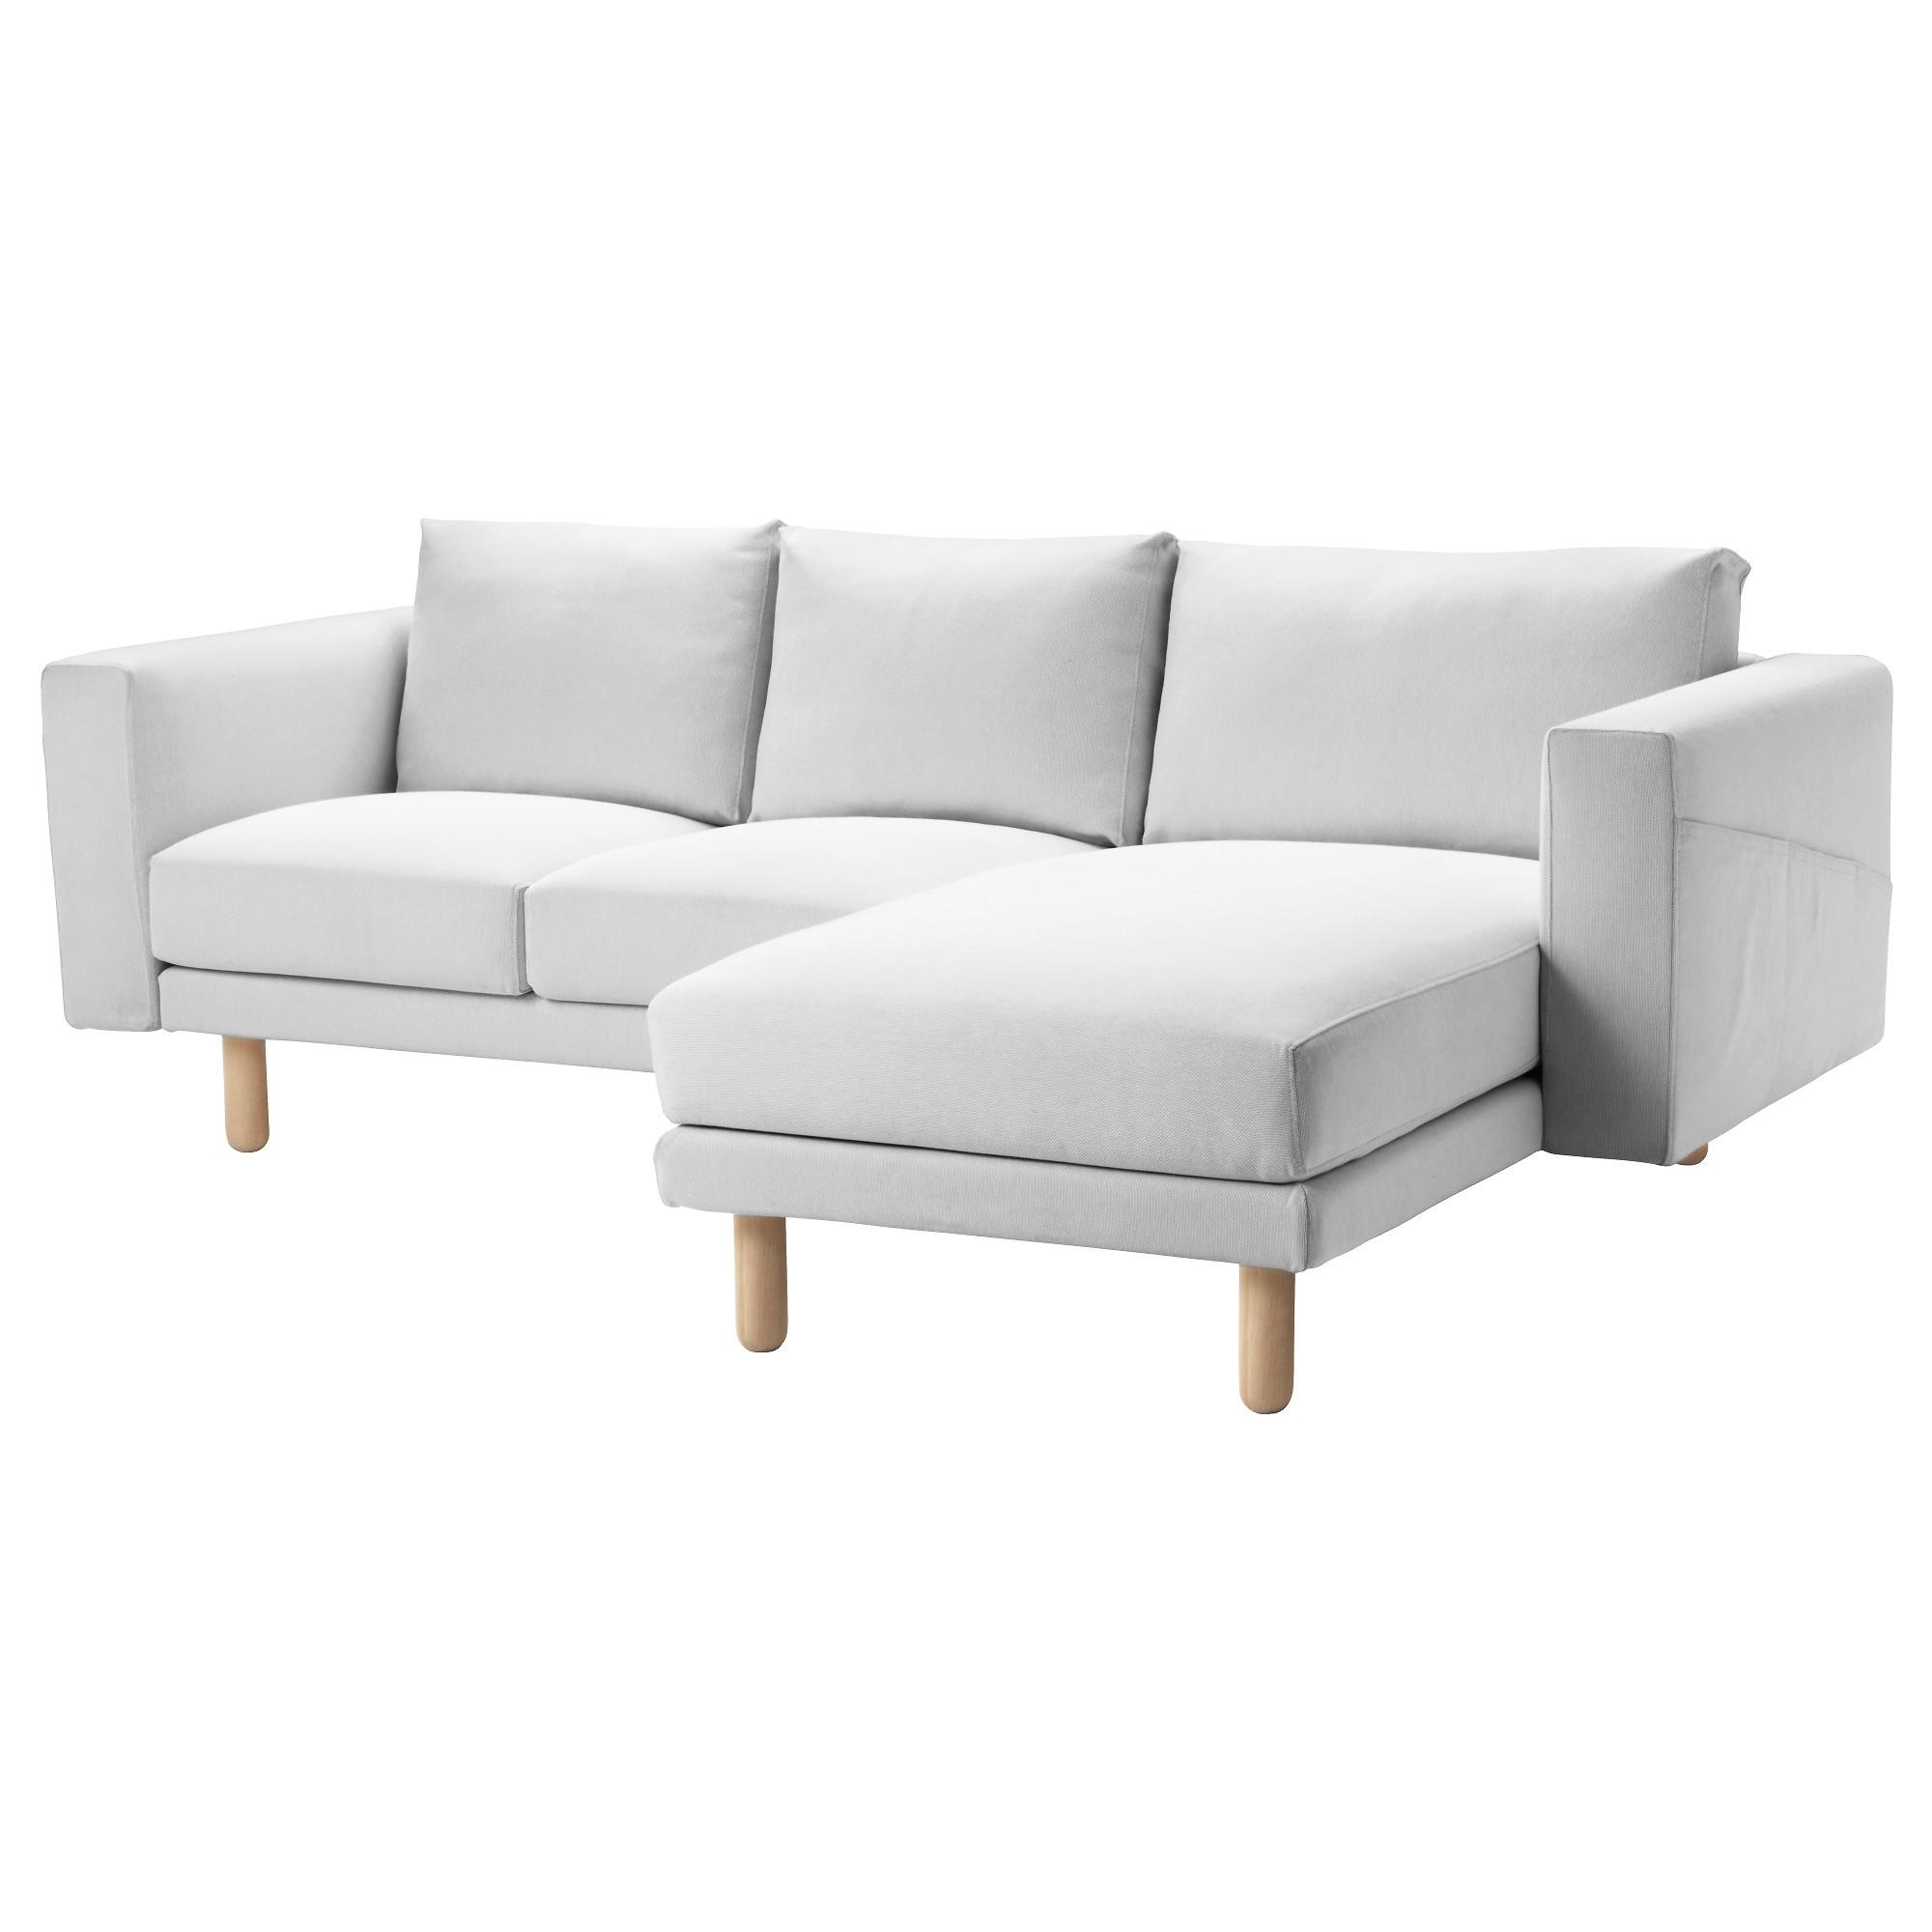 Ikea Sofas Chaise Longue 20 Photos Ikea Chaise Lounge Sofa | Sofa Ideas